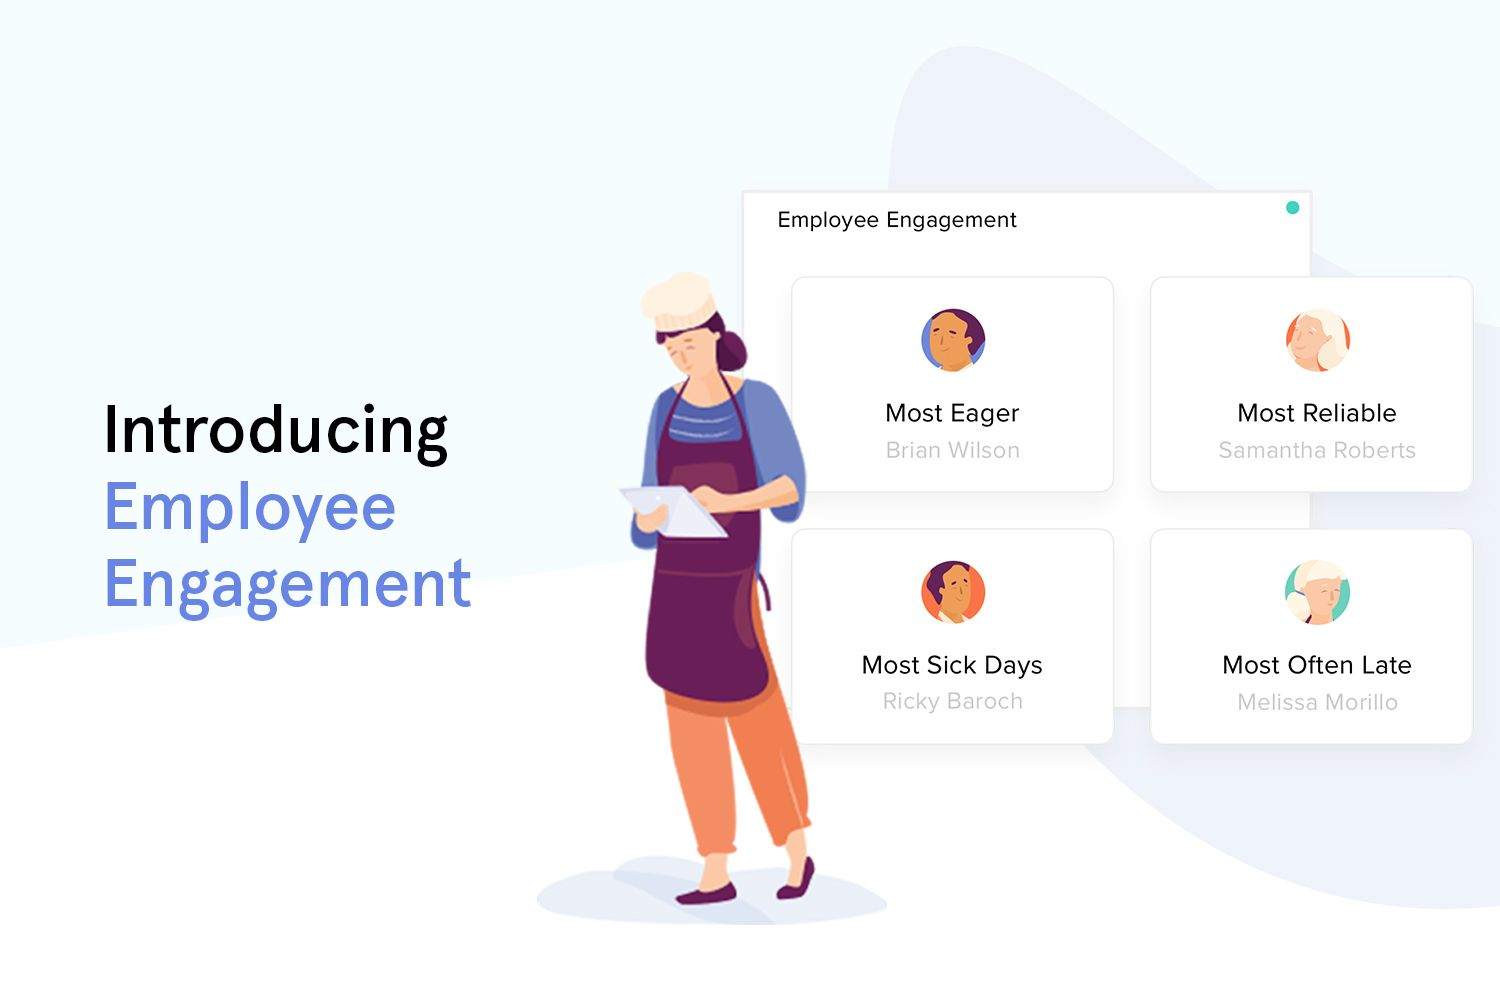 [Release] Quantifying Employee Engagement at Restaurants with Engage